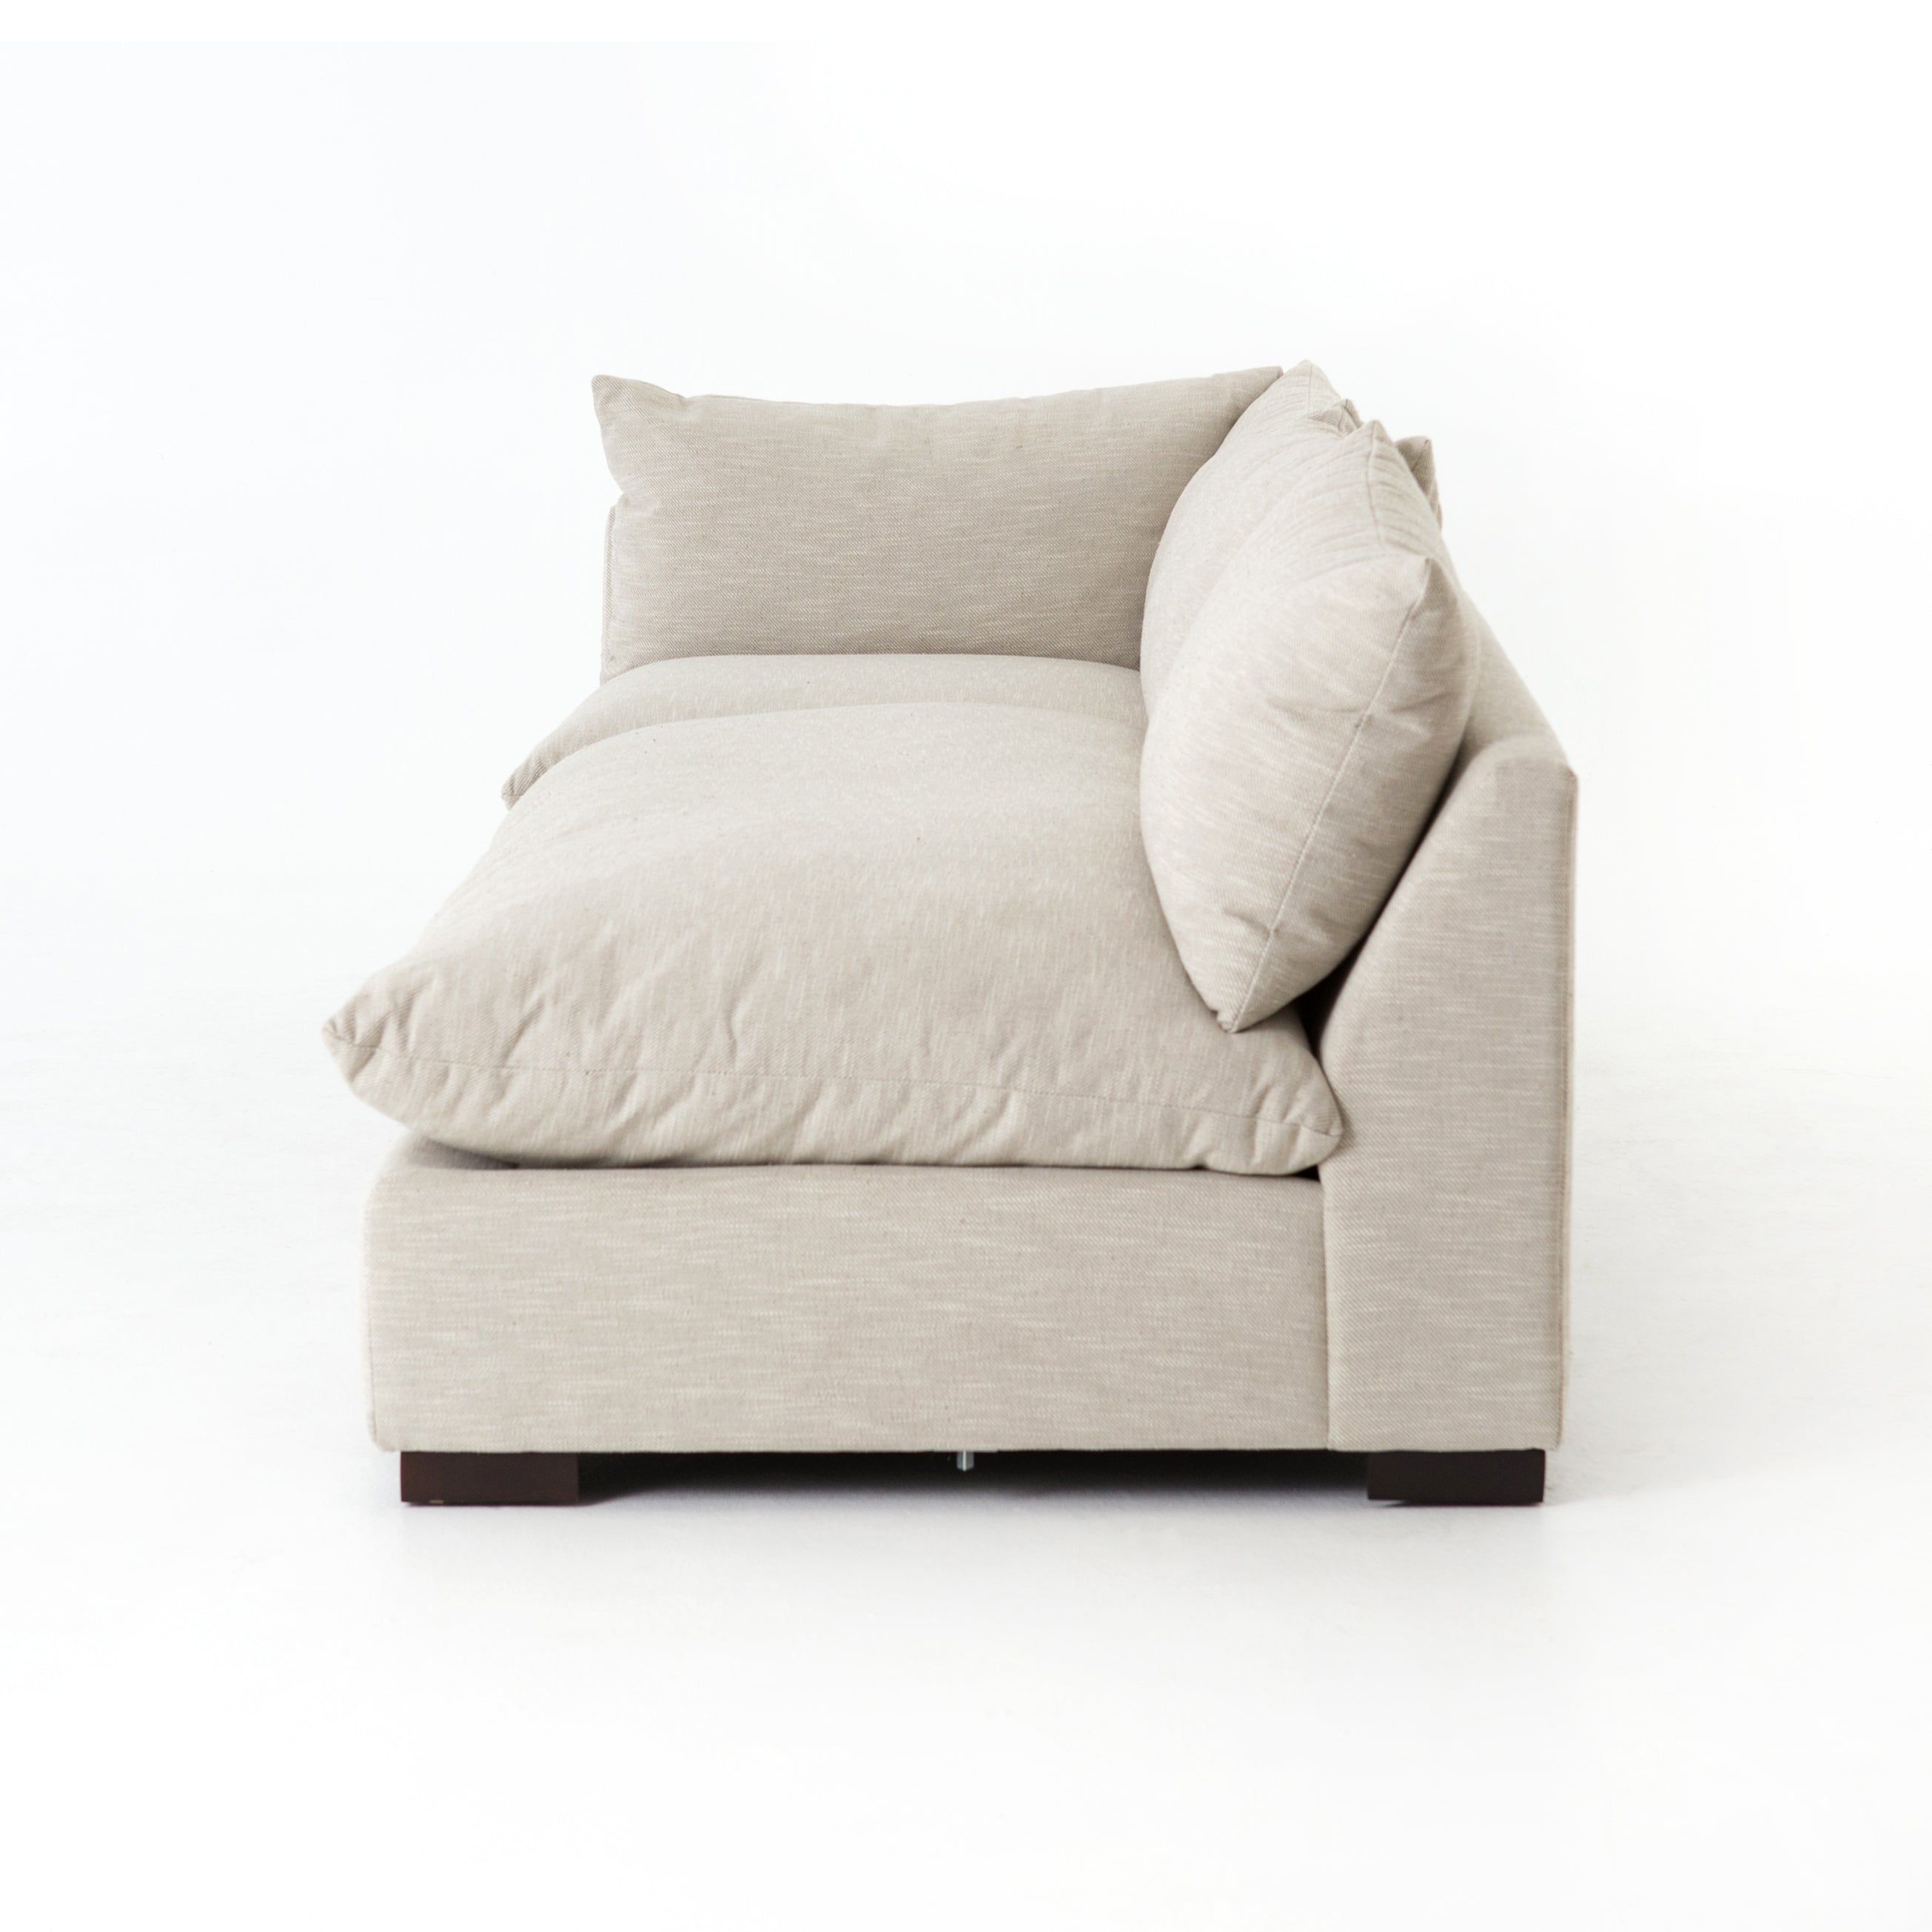 Grant 3-Pc Sectional-Ashby Oatmeal